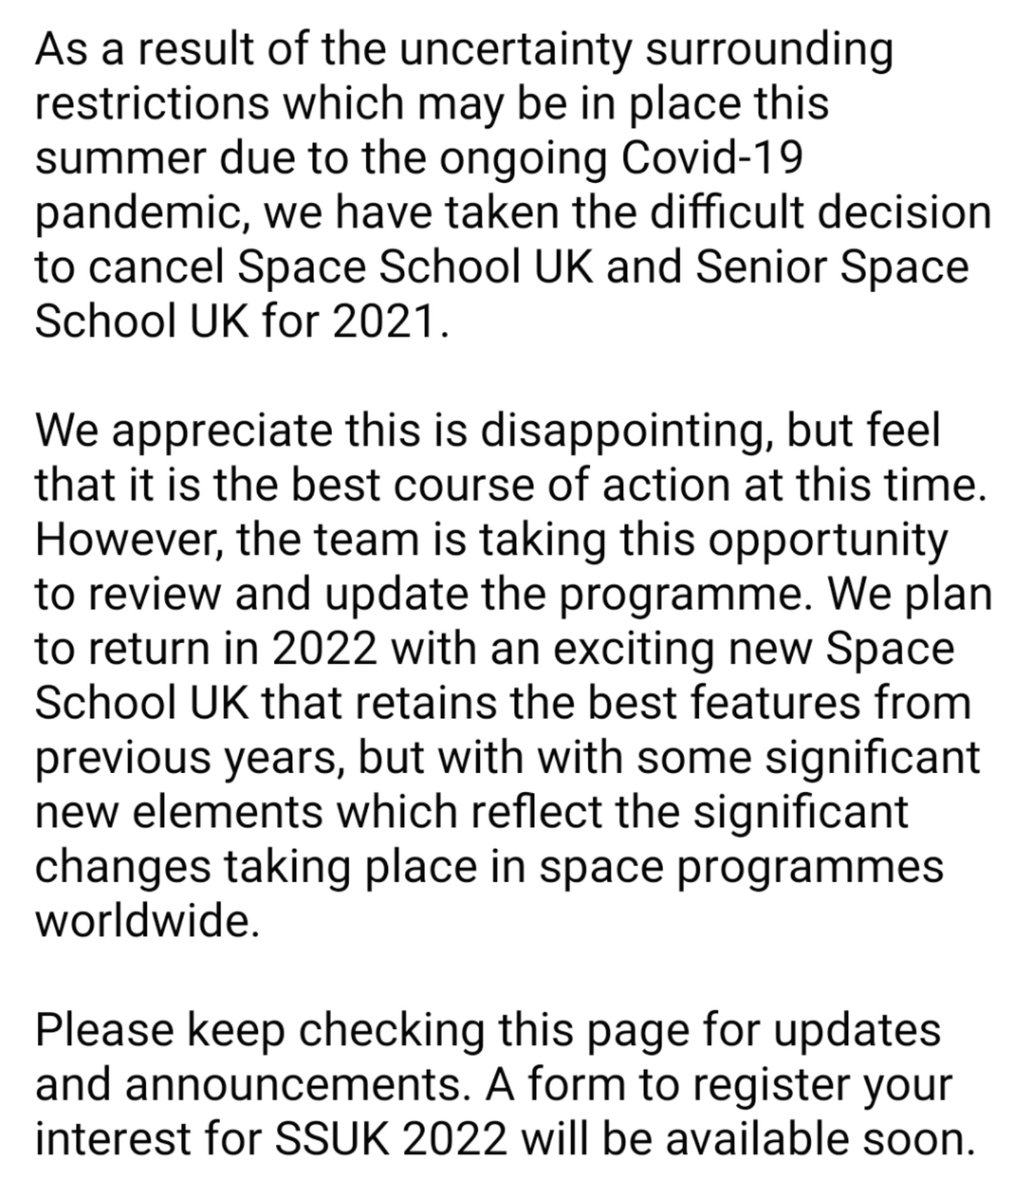 We have taken the difficult decision to cancel Space School UK 2021, but we look forward to returning in 2022. Please see our statement below.